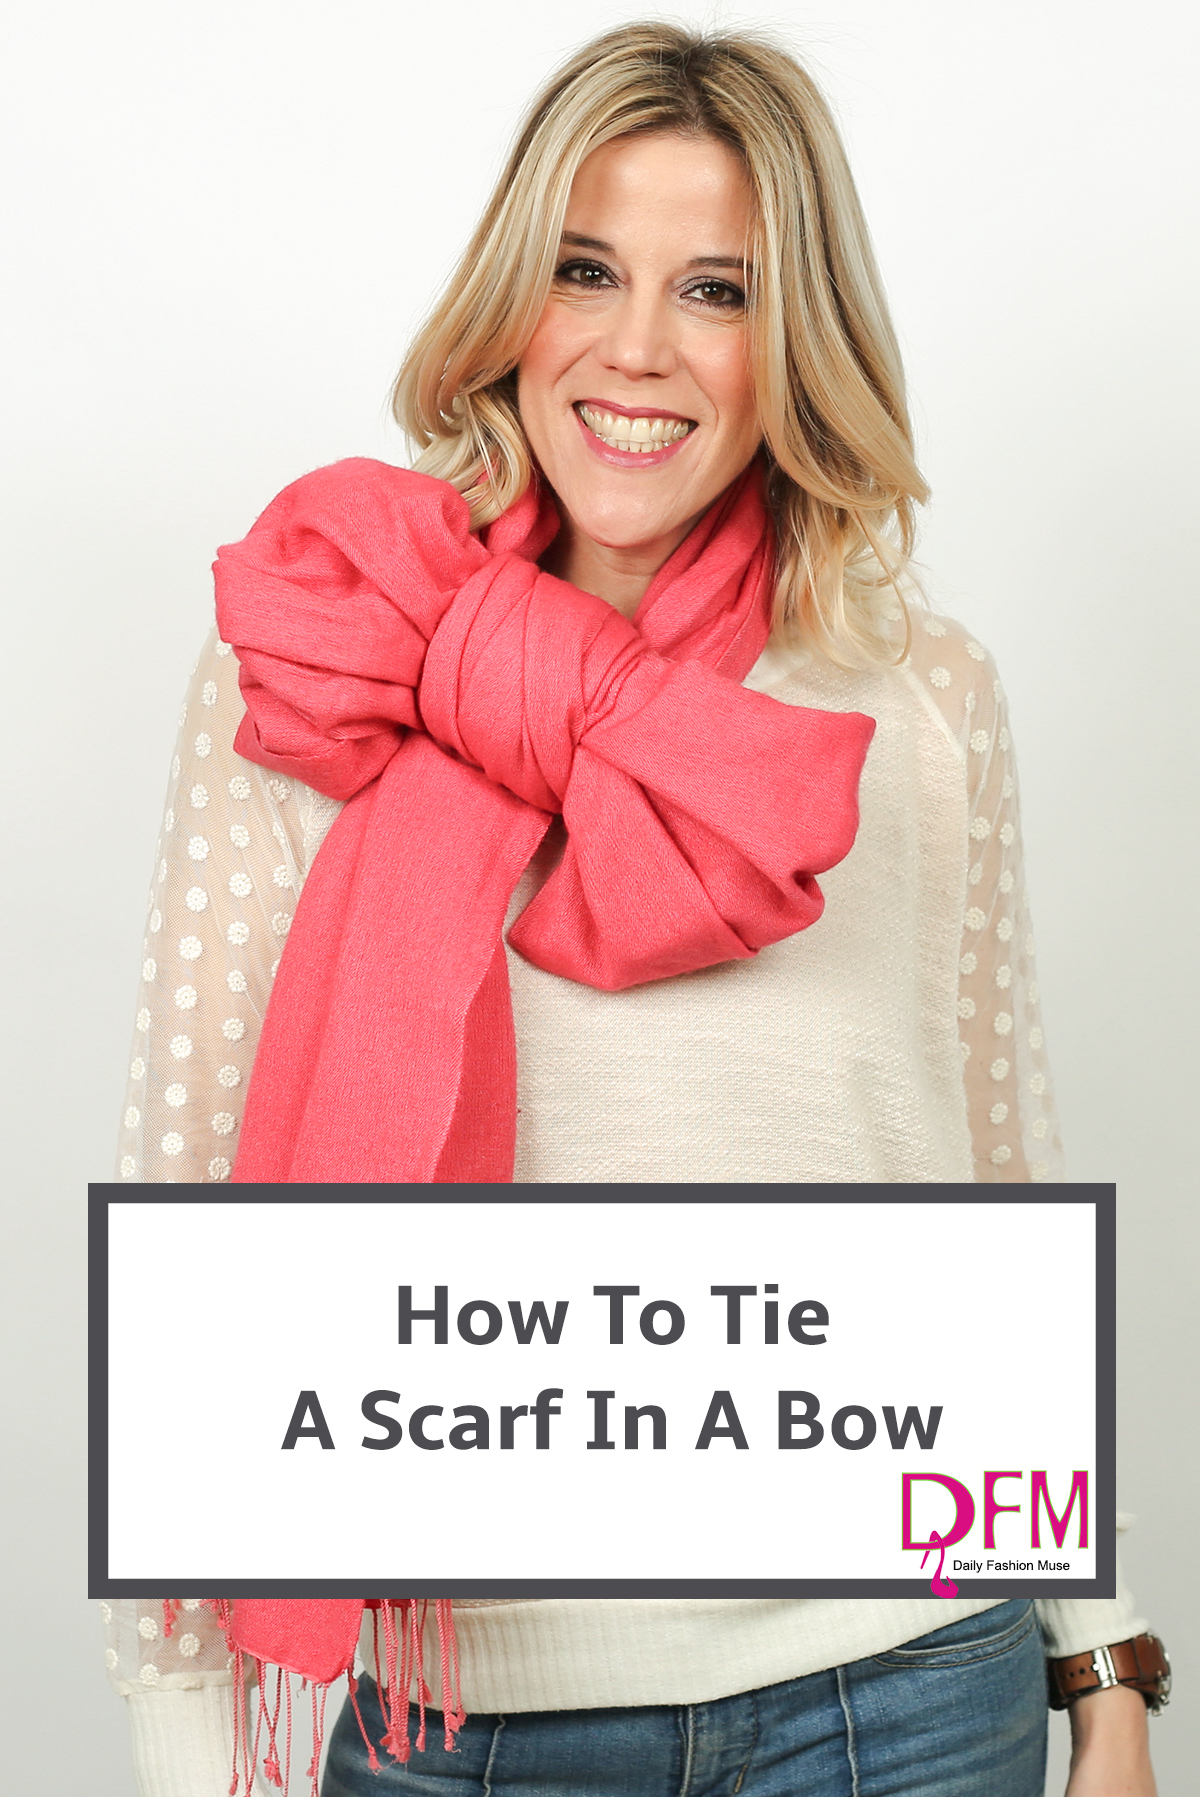 If you are looking for a new way to wear your scarf, click through to watch the video on how to tie your scarf into a bow.